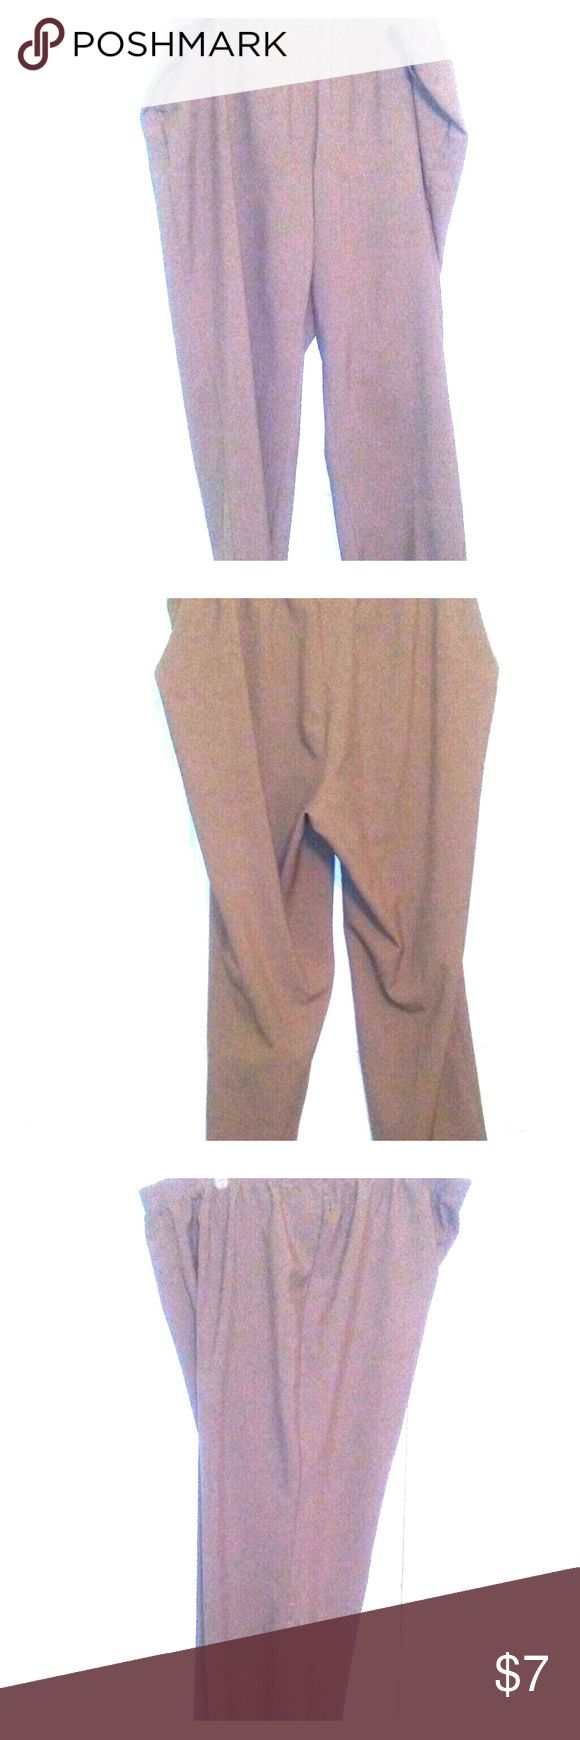 Womens Alia size 24W dark tan work slacks Womens plus size Alia 24W dark tan dress slacks. In great condition. Perfect for wearing to the office. 100% polyester. Machine wash warm gentle cycle. Tumble dry low gentle cycle. Iron low. Made in Jordan. Smoke free home. Alia Pants